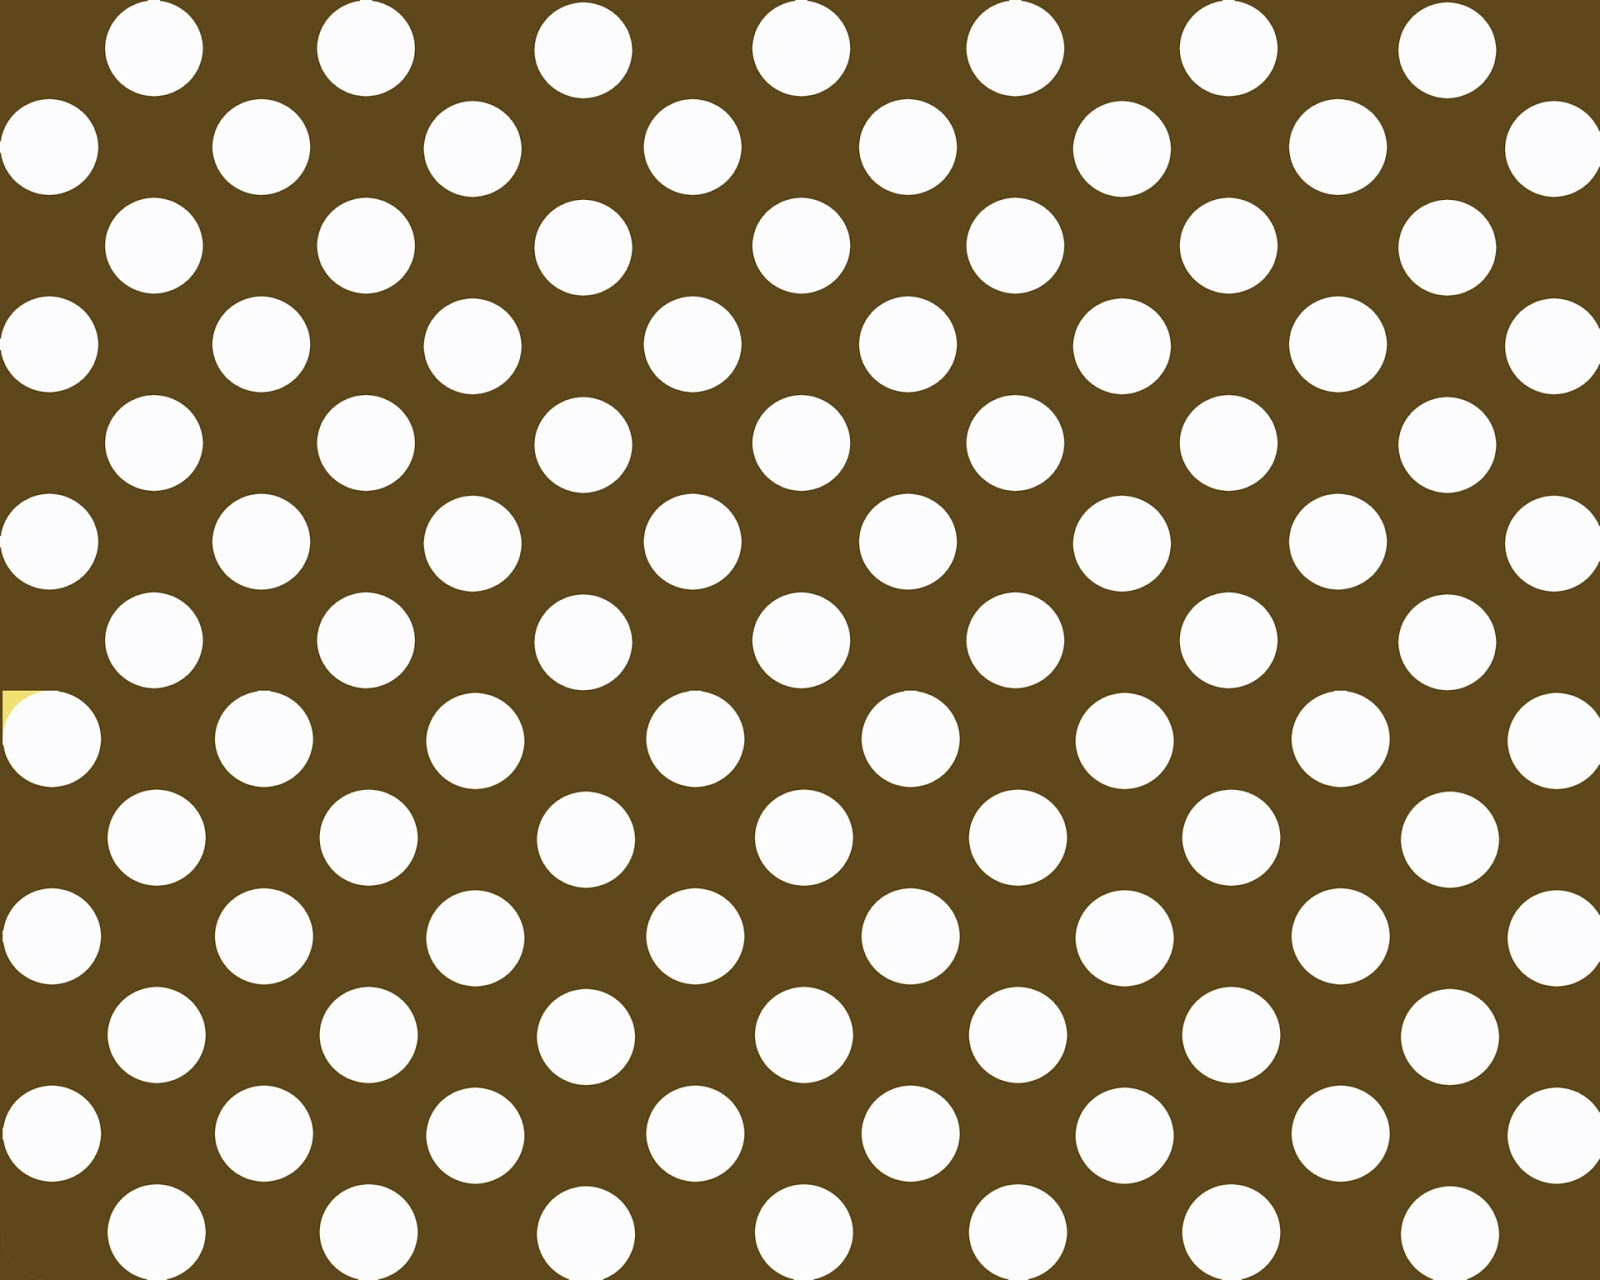 polkadots: PolkaDot Backgrounds